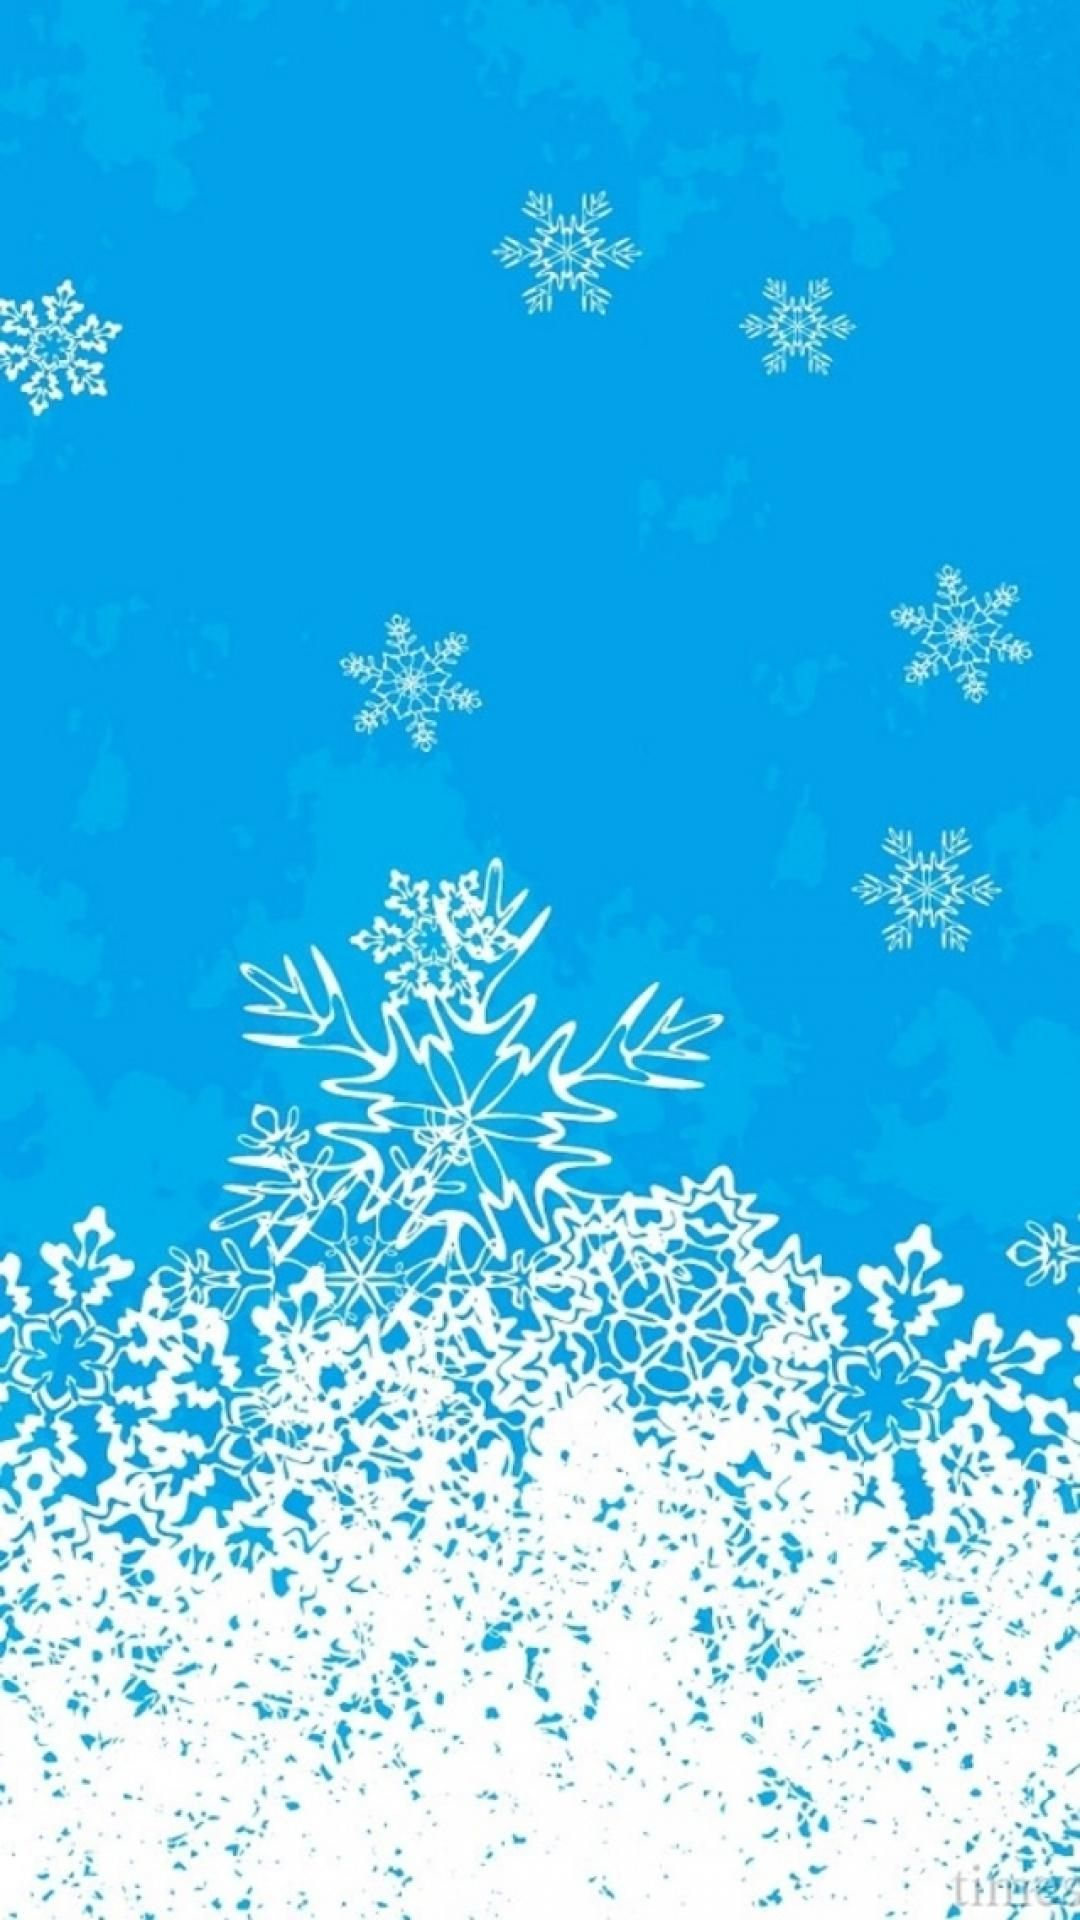 Merry Christmas Snowflake Background IPhone 6 Wallpaper